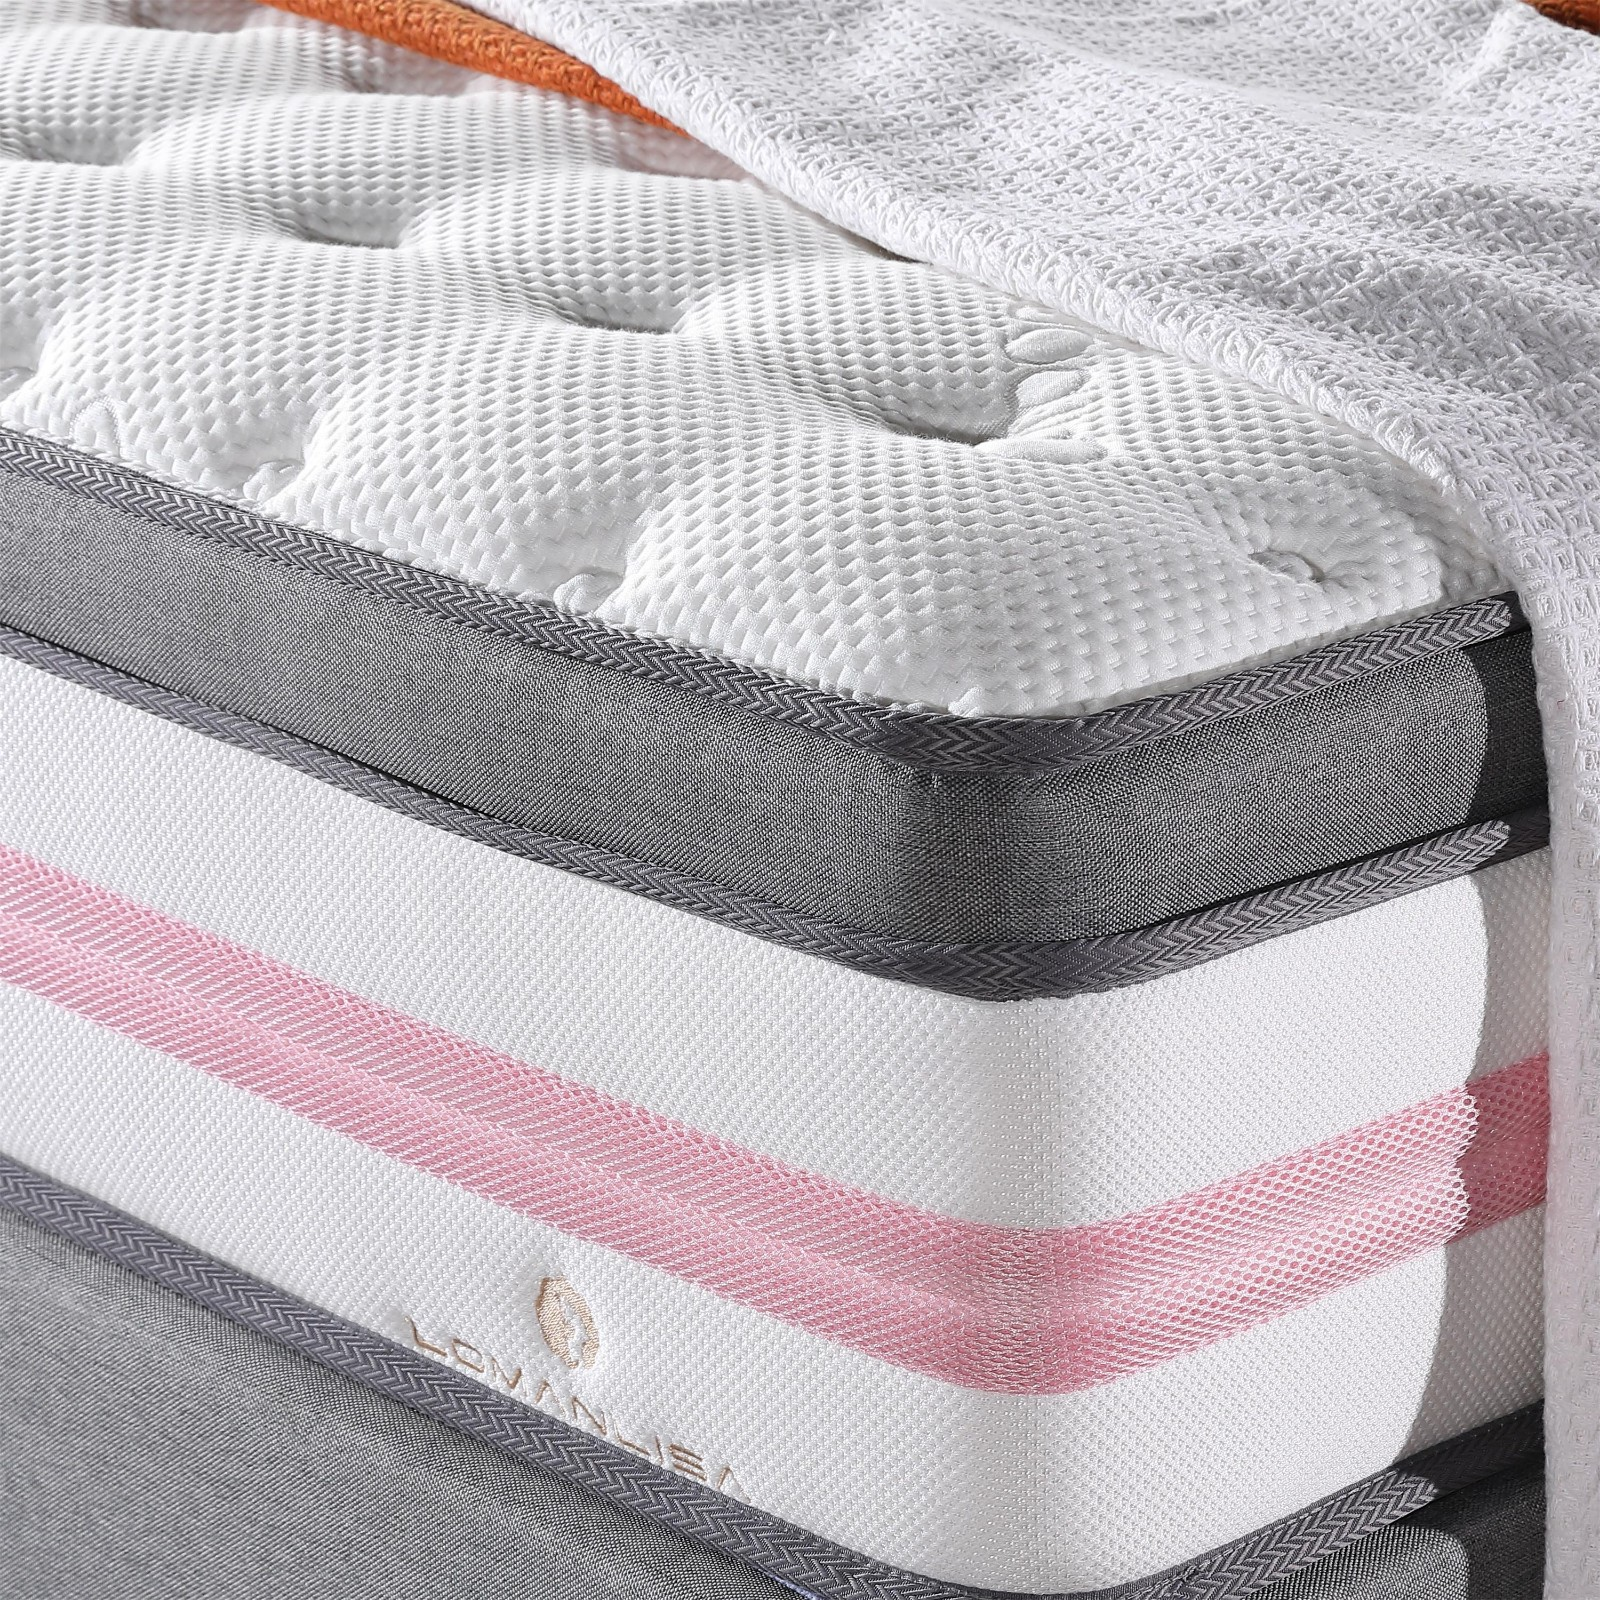 Euro Top Design Princess Pink 5 Zoned Wool Darcon Foam Pocket Spring Mattress with Anti-Mite Function-3